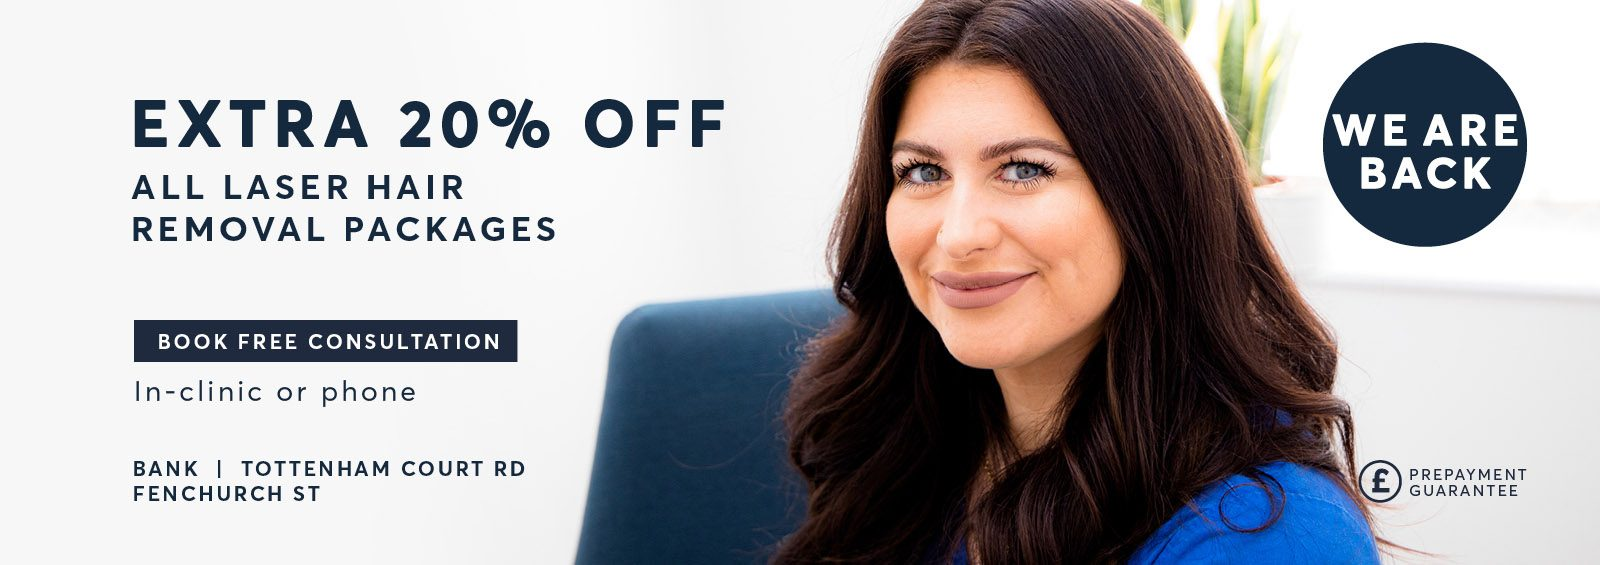 Home Page Laser Hair Removal Extra 20 percent discount